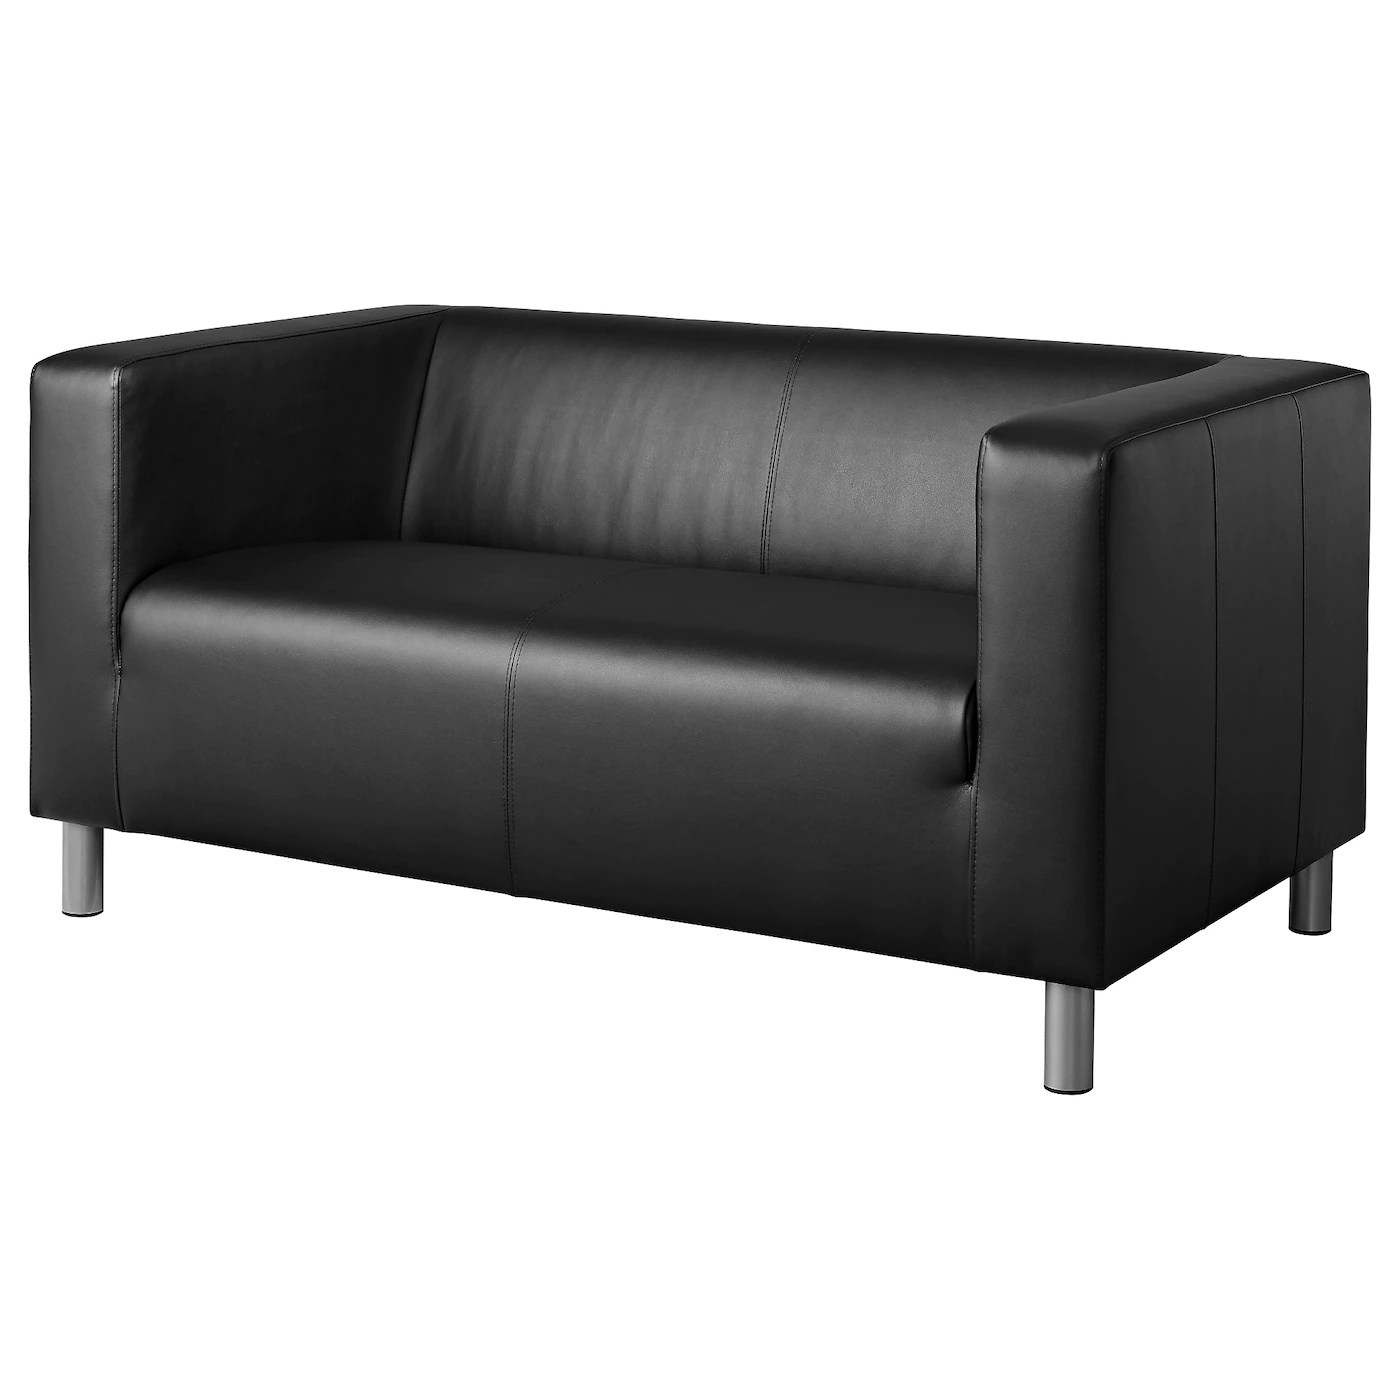 one and half seater sofa cost small 2 ikea klippan compact seat